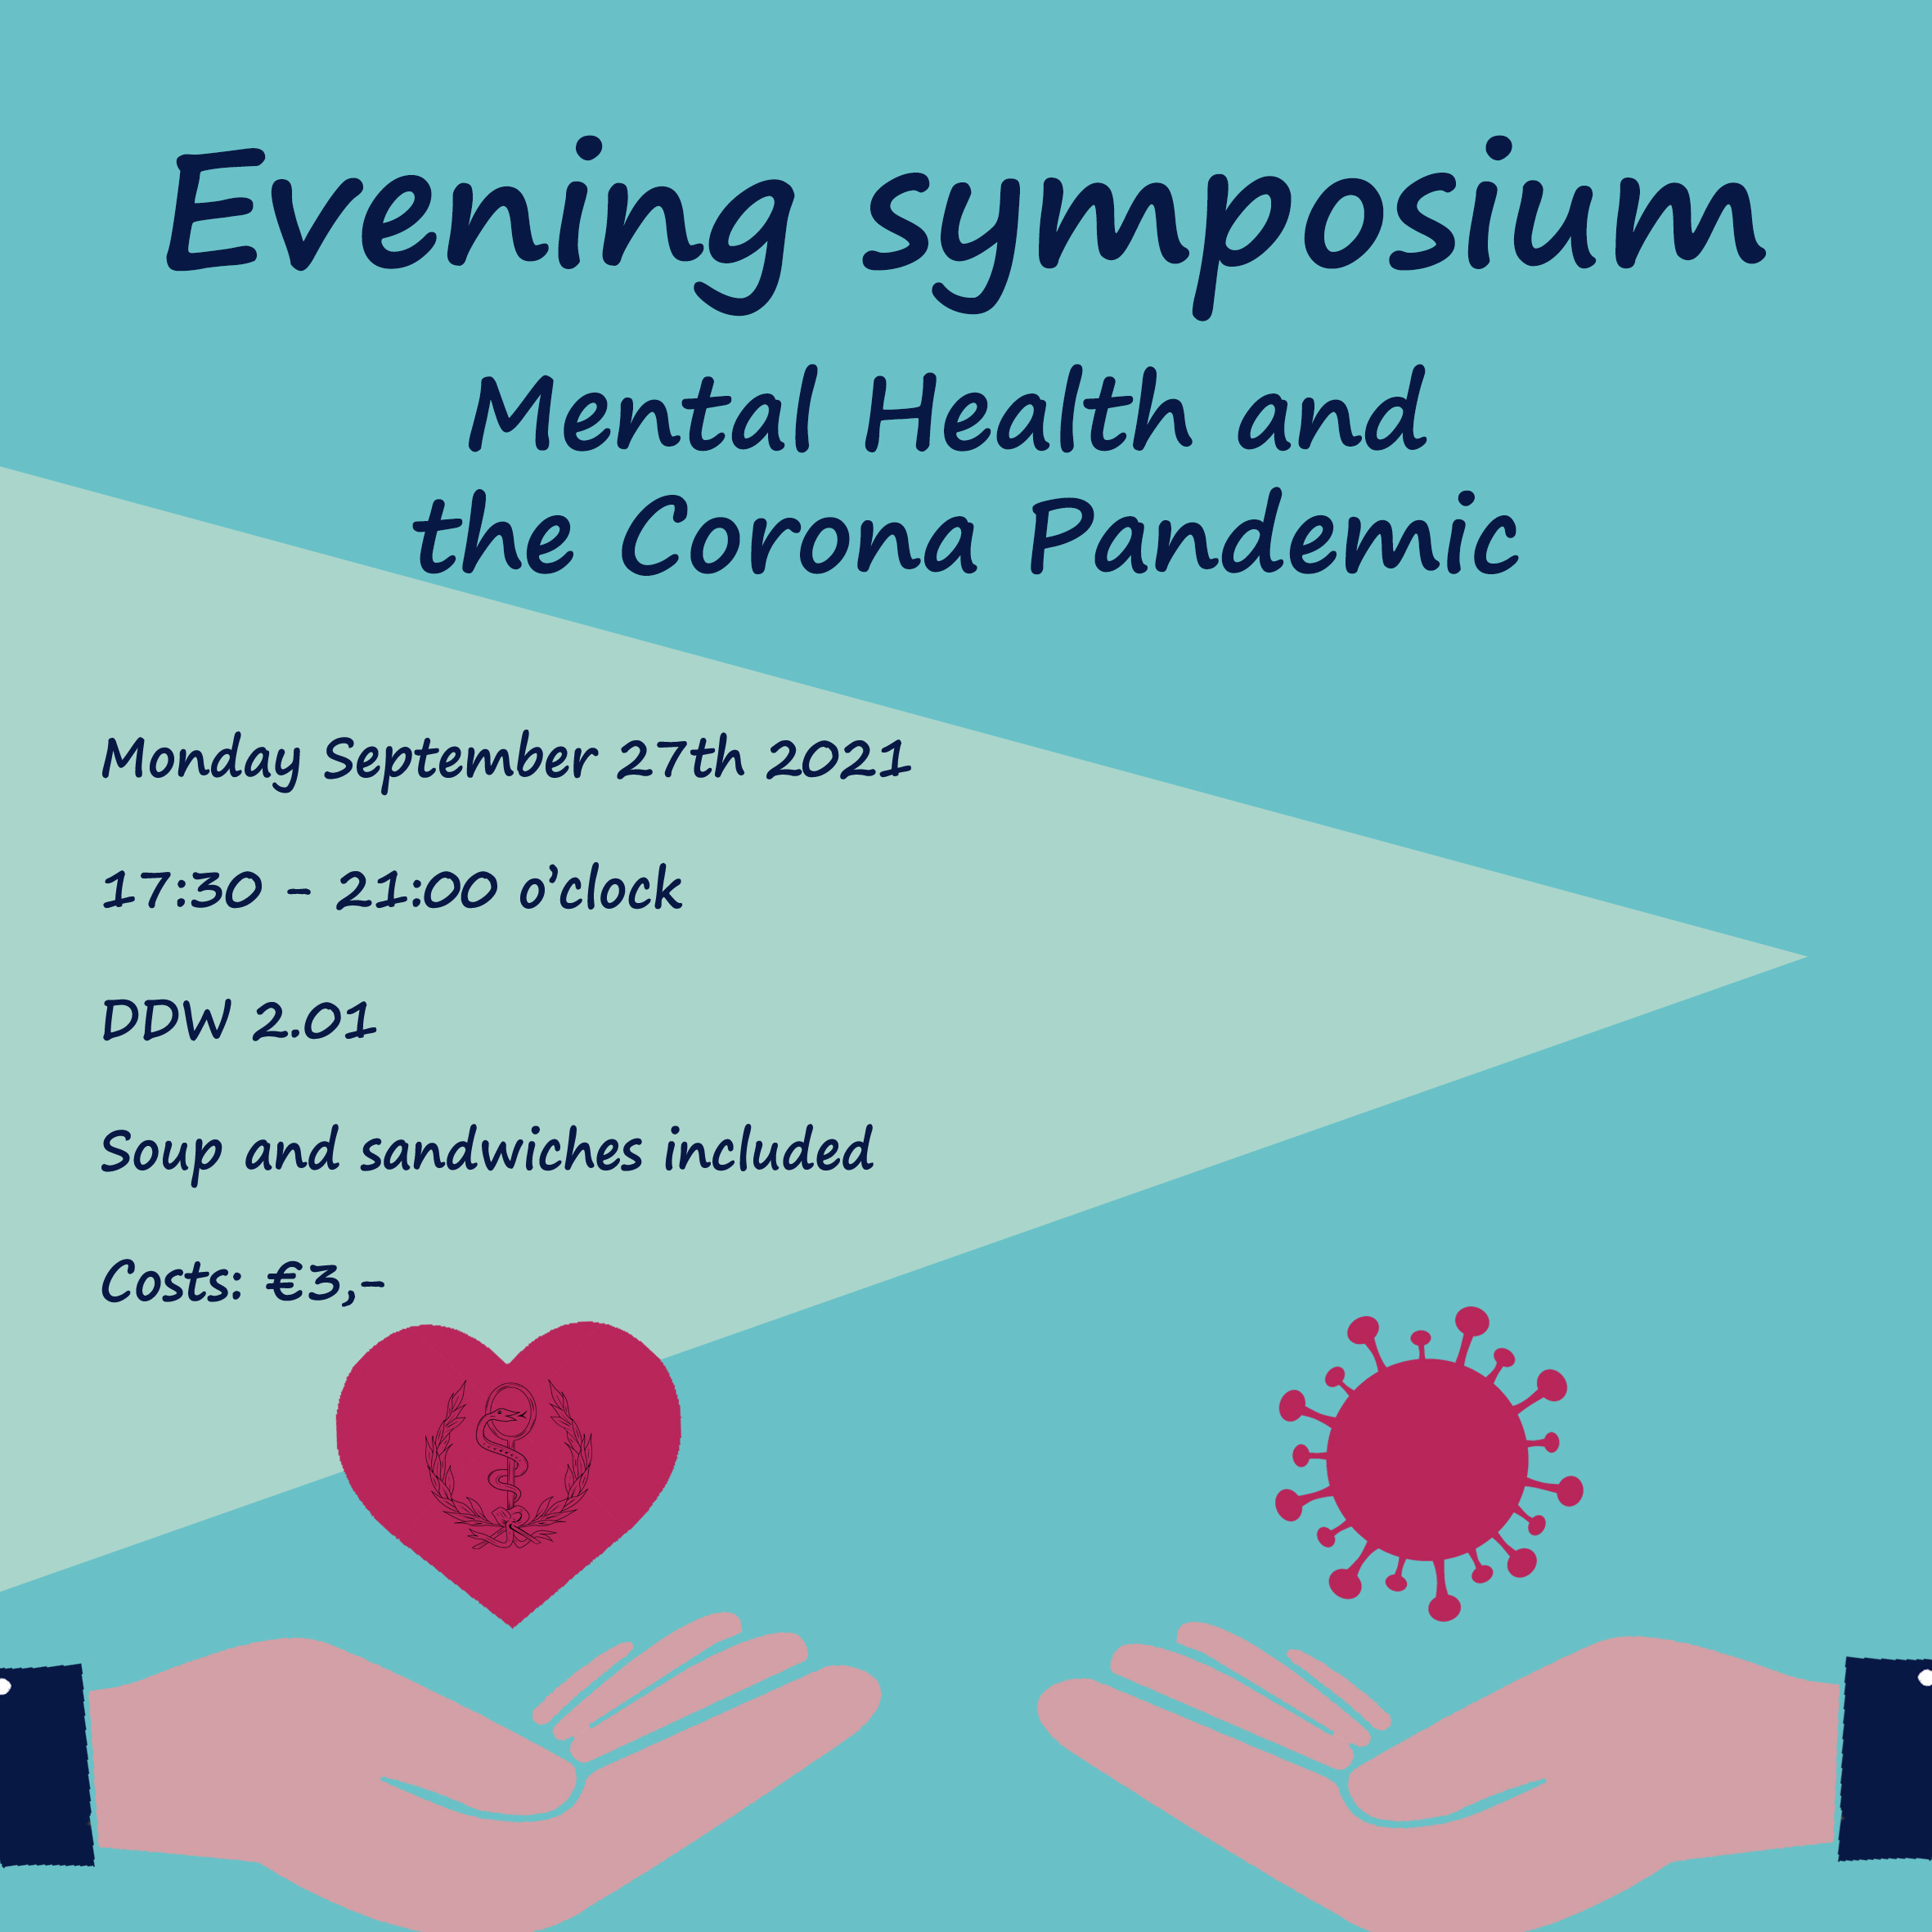 Evening symposium: Mental Health and the Corona Pandemic